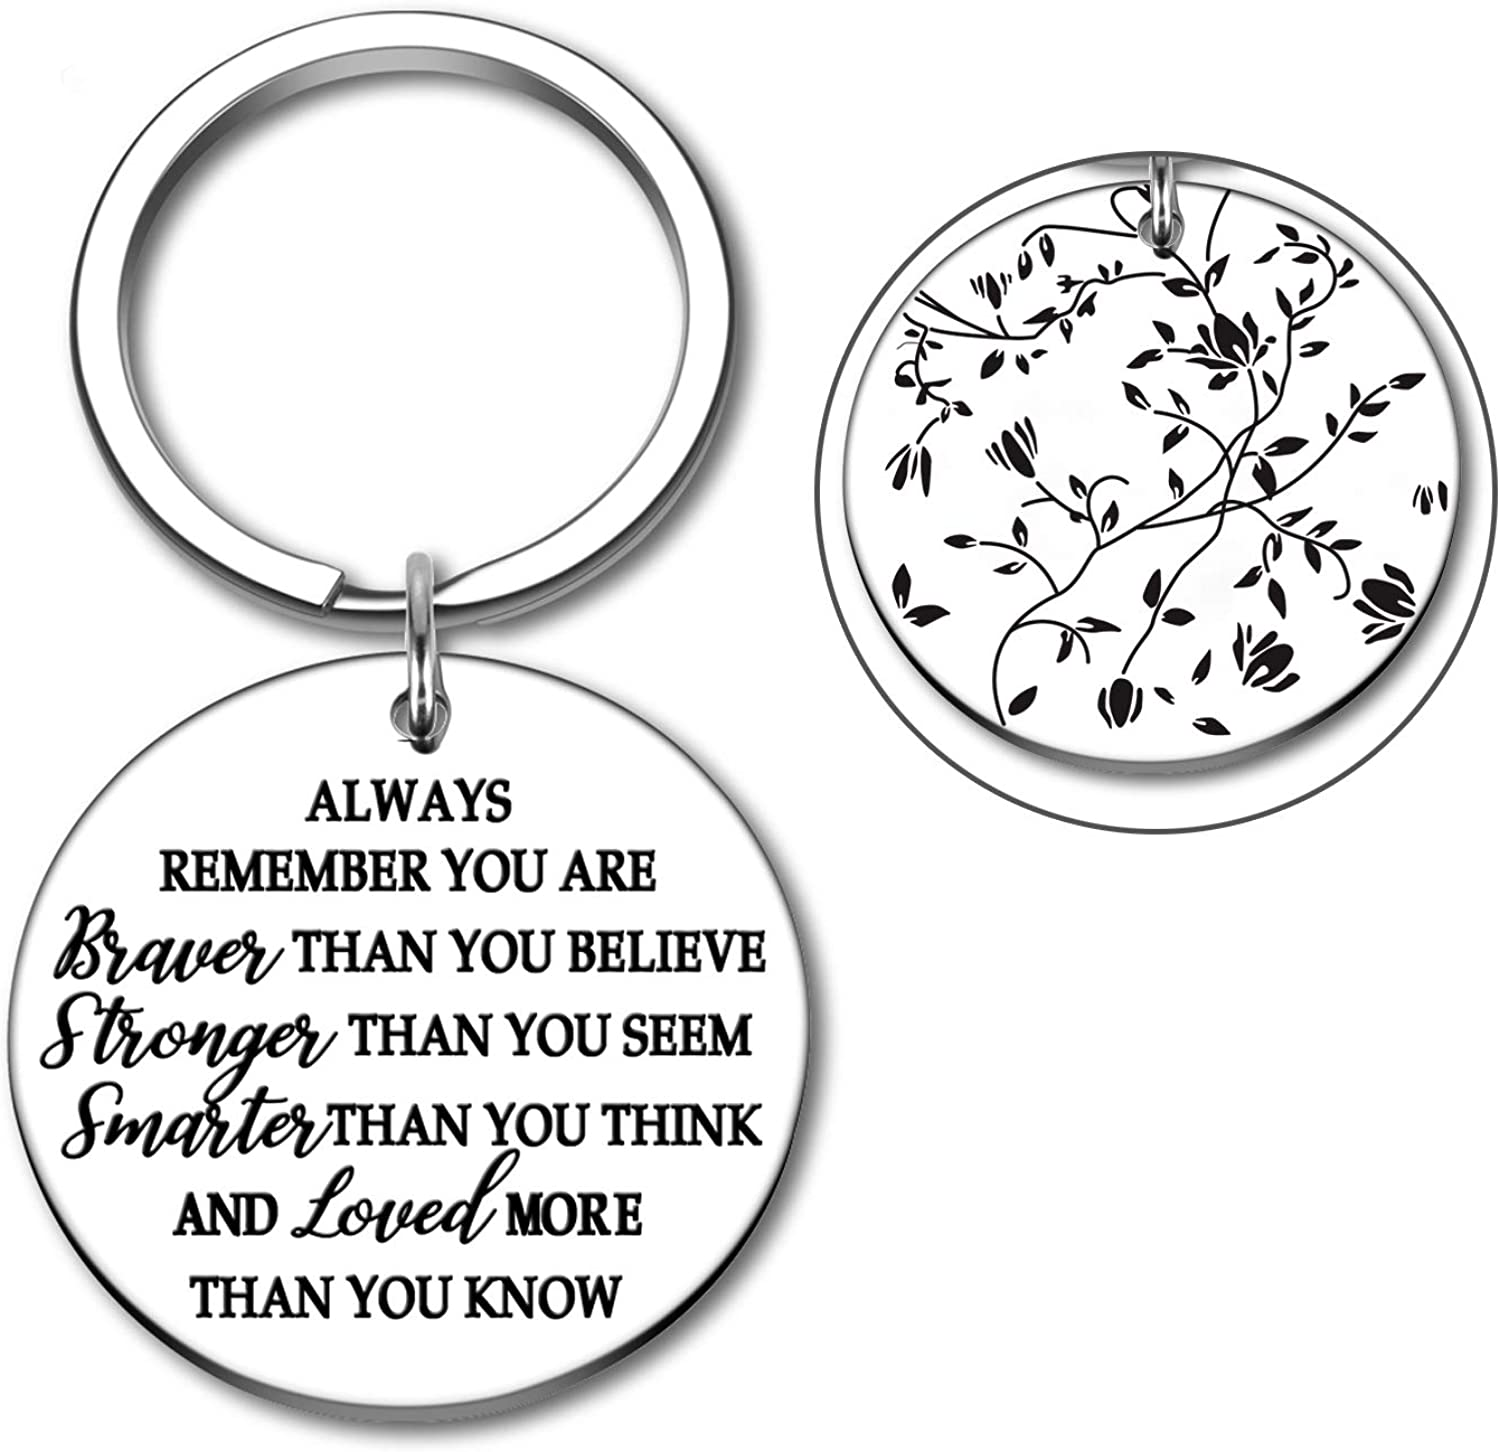 Inspirational Keychain for Son Daughter Christmas 2021 Graduation Women Men Friend Presents for Kids Teenagers Key Tags You are Braver Than You Believe Stronger